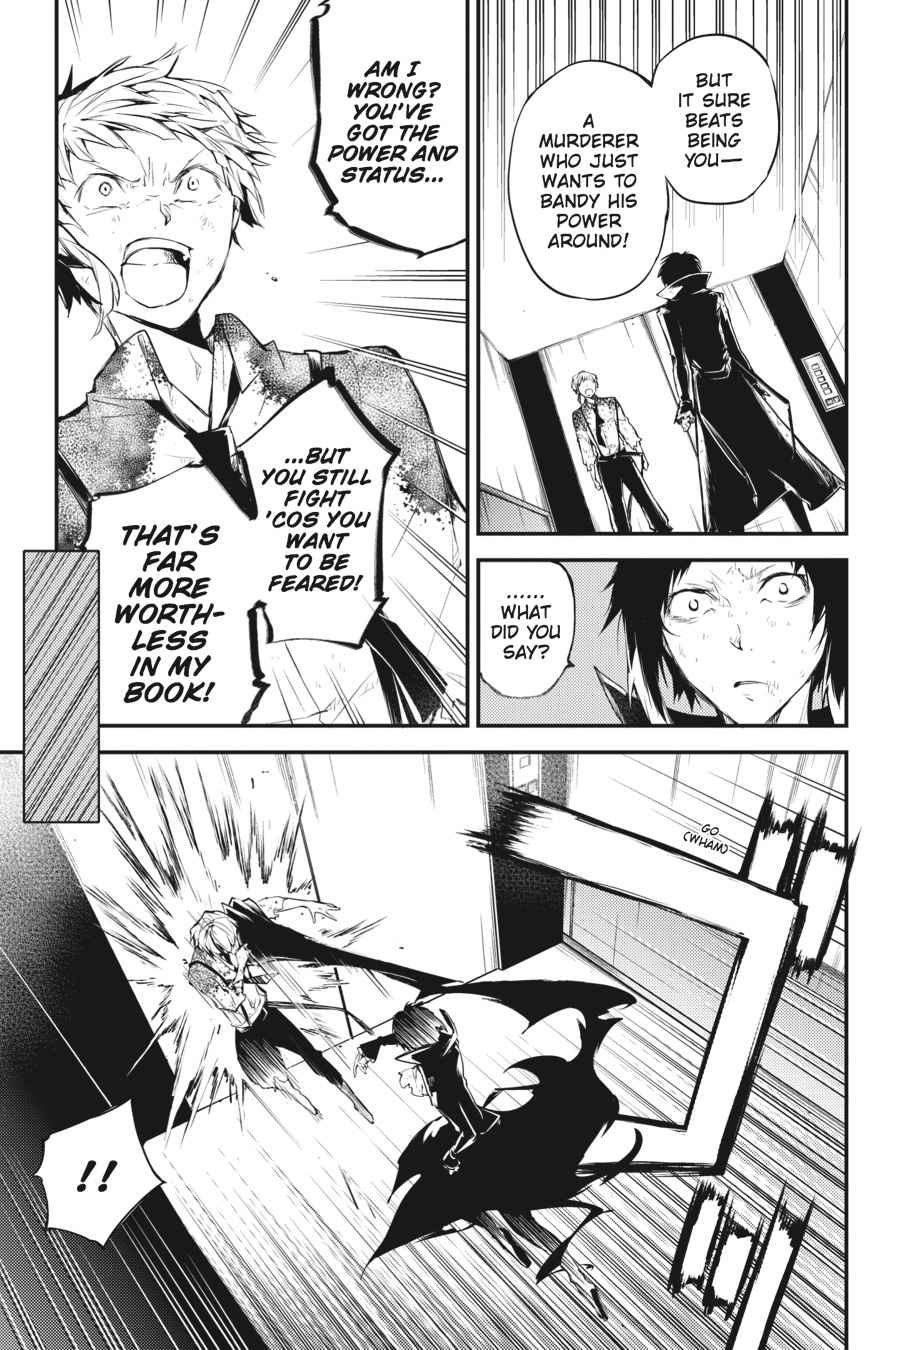 Bungou Stray Dogs Chapter 35 Page 13